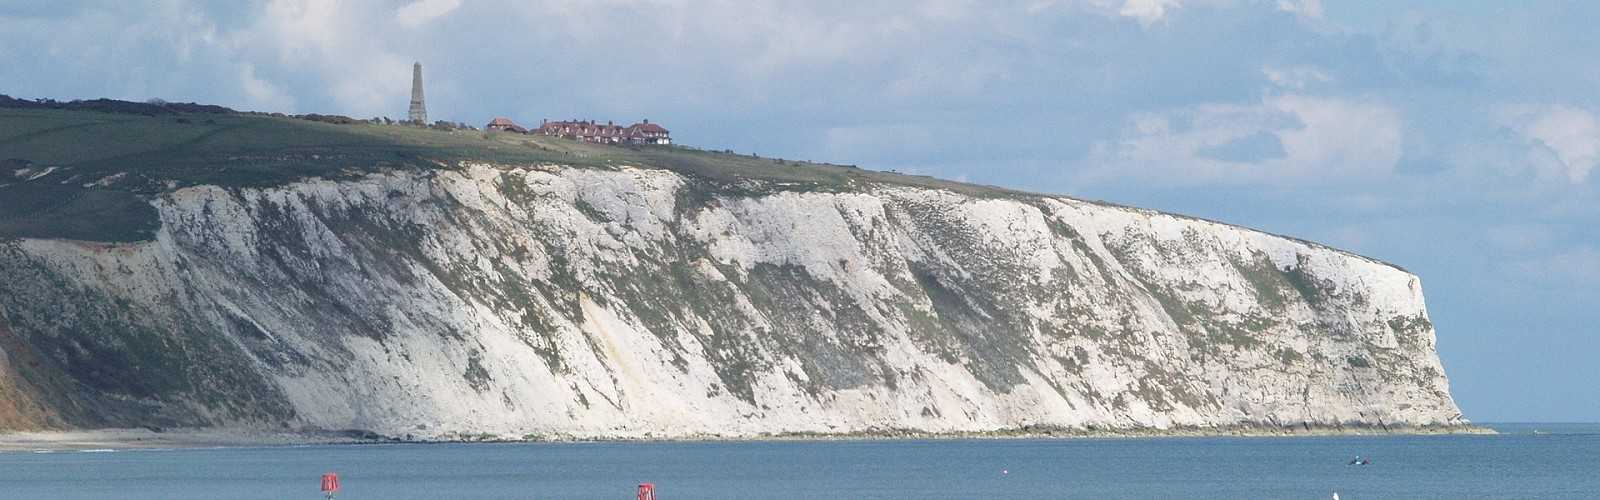 Isle of Wight cliffs (image: pixabay)